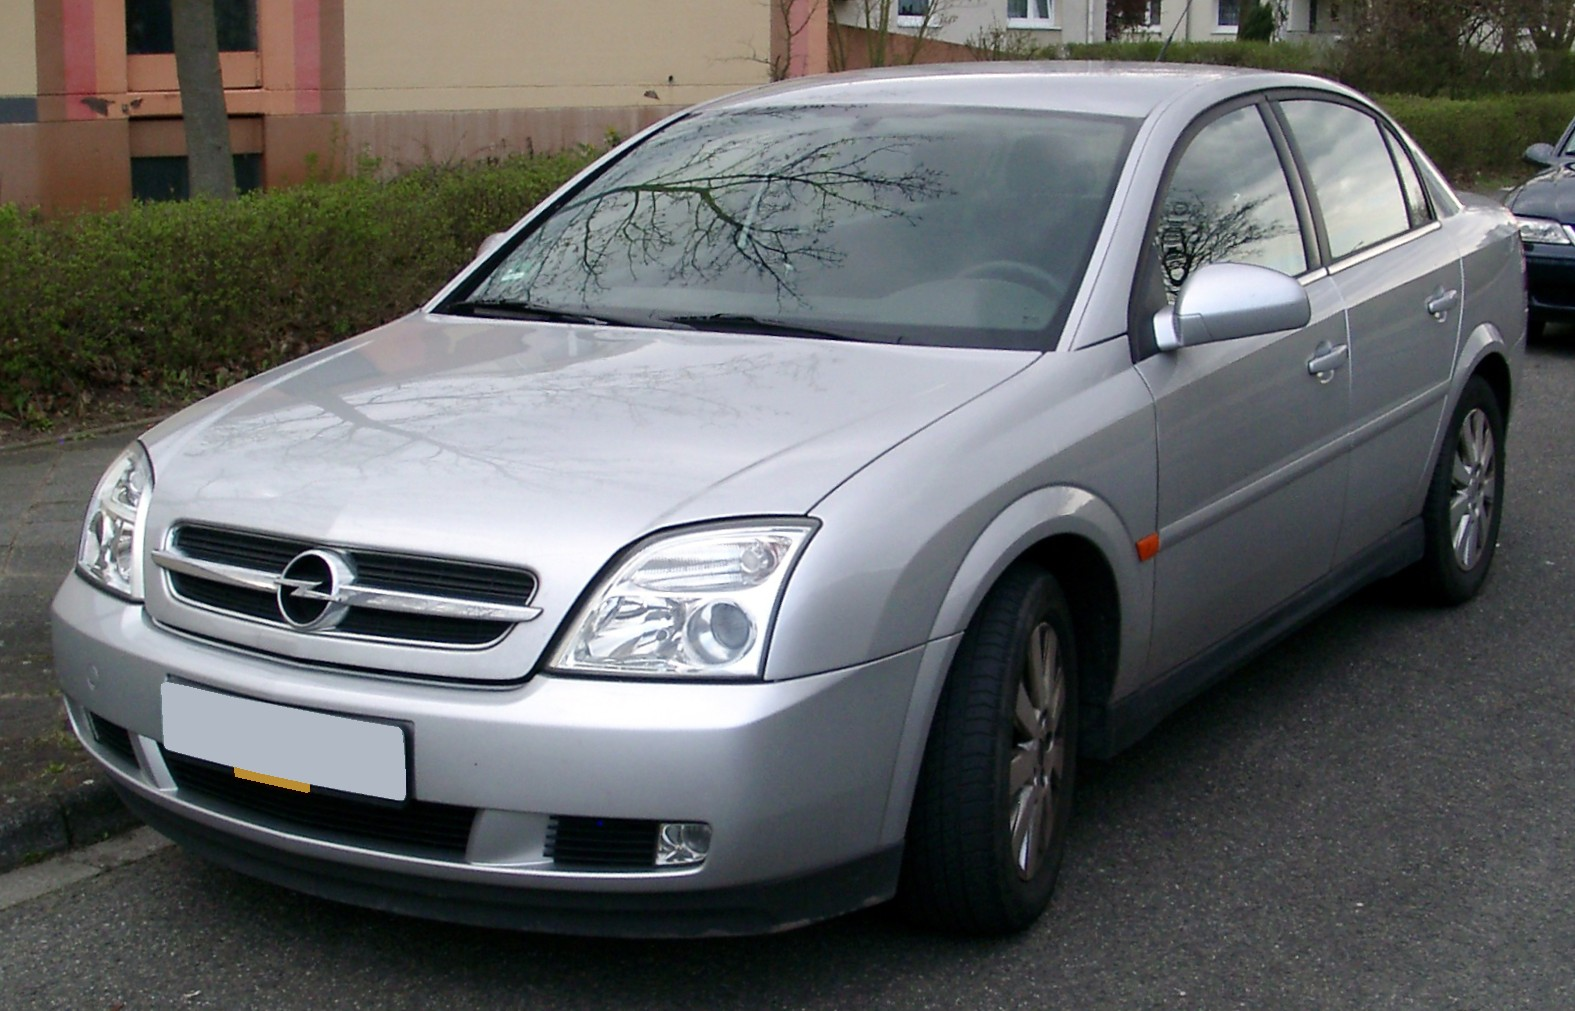 Pictures of holden vectra (b) 2006 #2